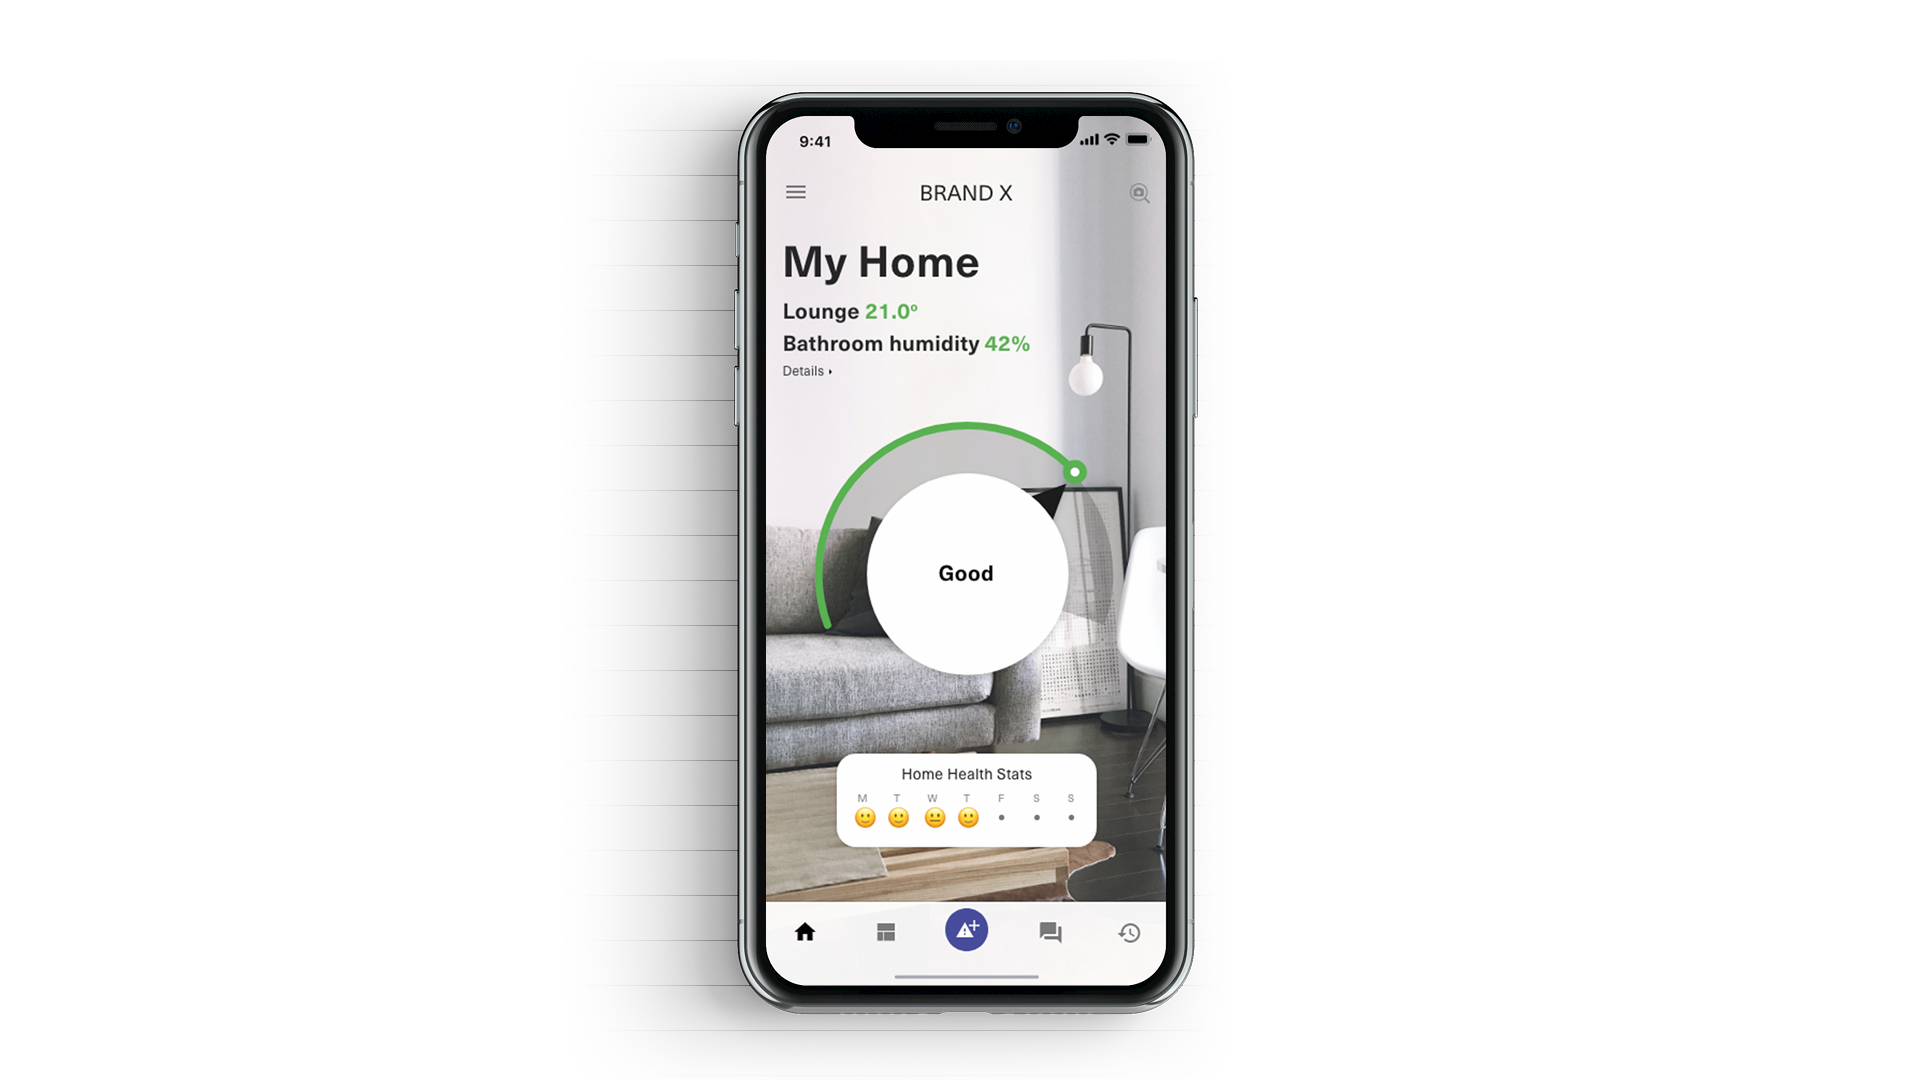 — New Home Insurance Business Models Through IoT